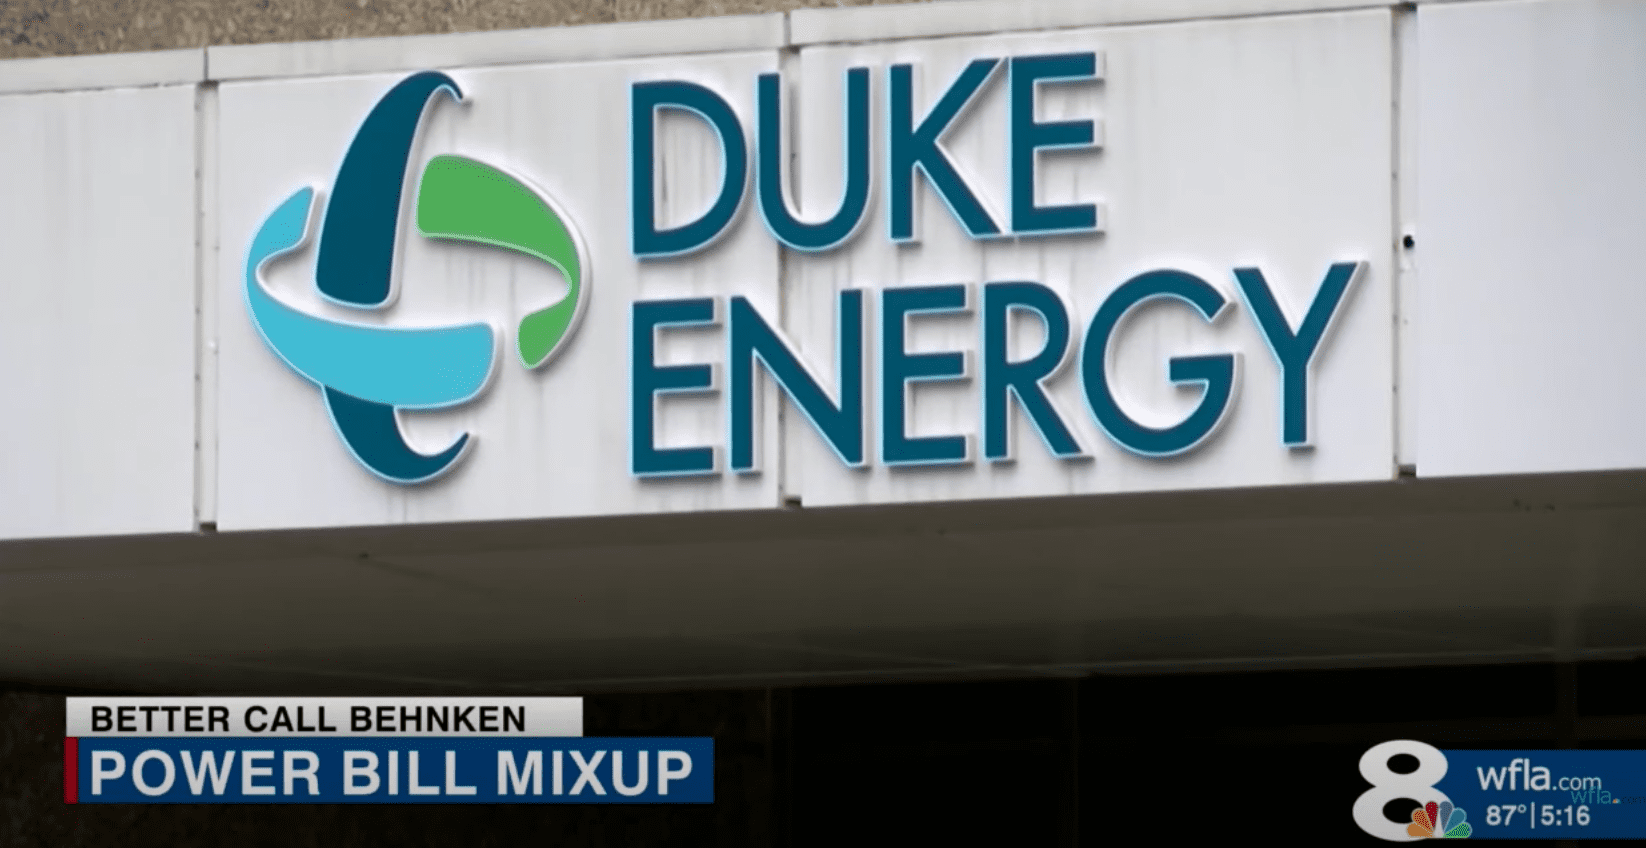 The exterior of the Duke Energy building, the company who is accused of charging a woman's account incorrectly   Photo: Youtube/WFLA News Channel 8